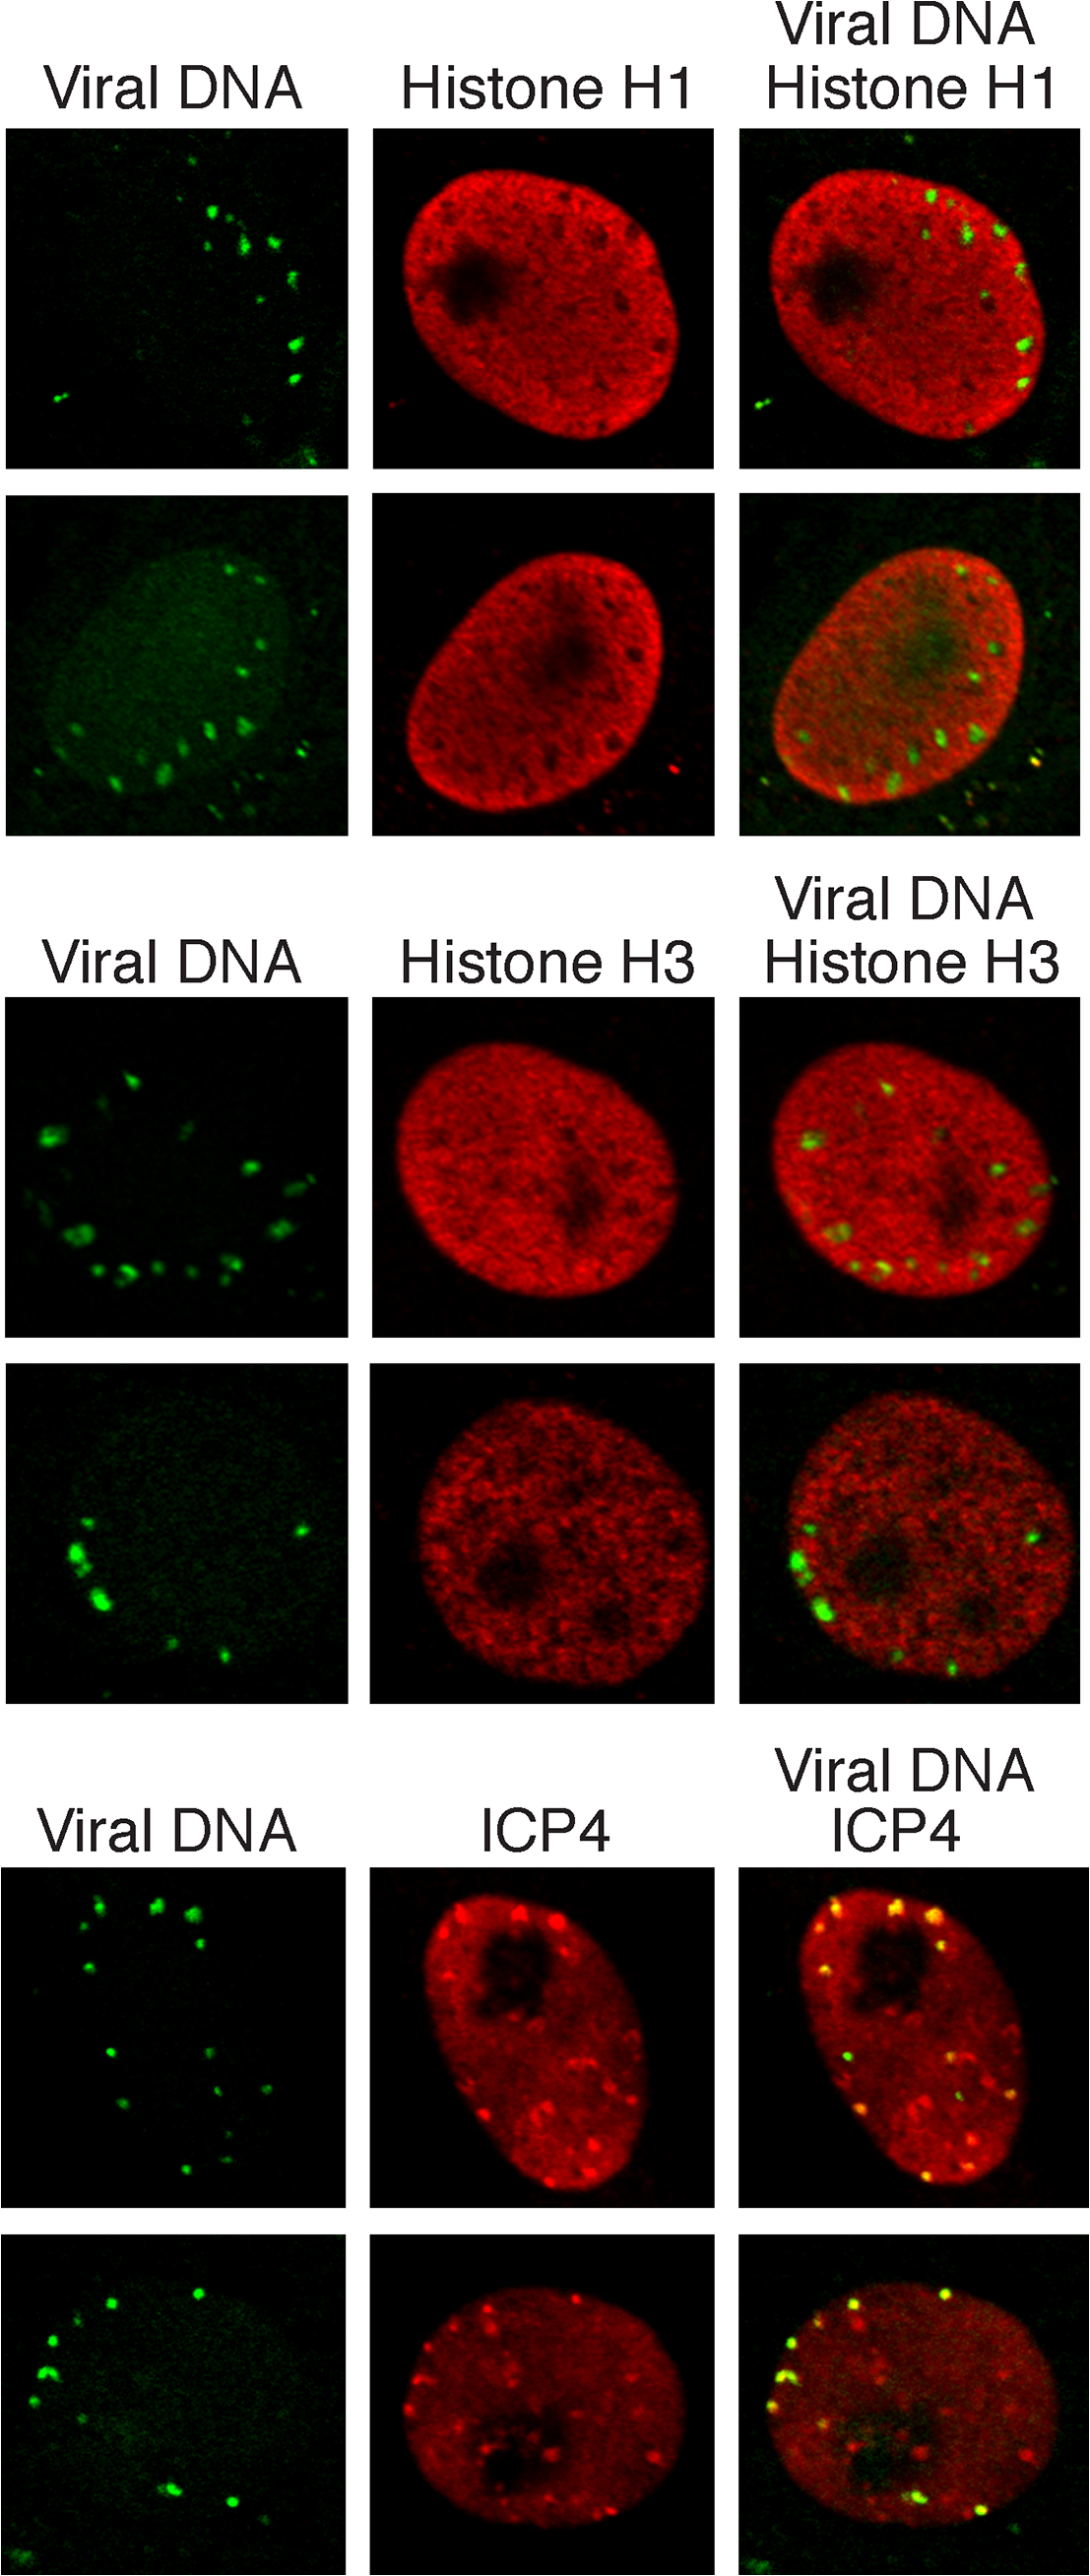 Histones H1 and H3 do not colocalize with incoming HSV genomes.